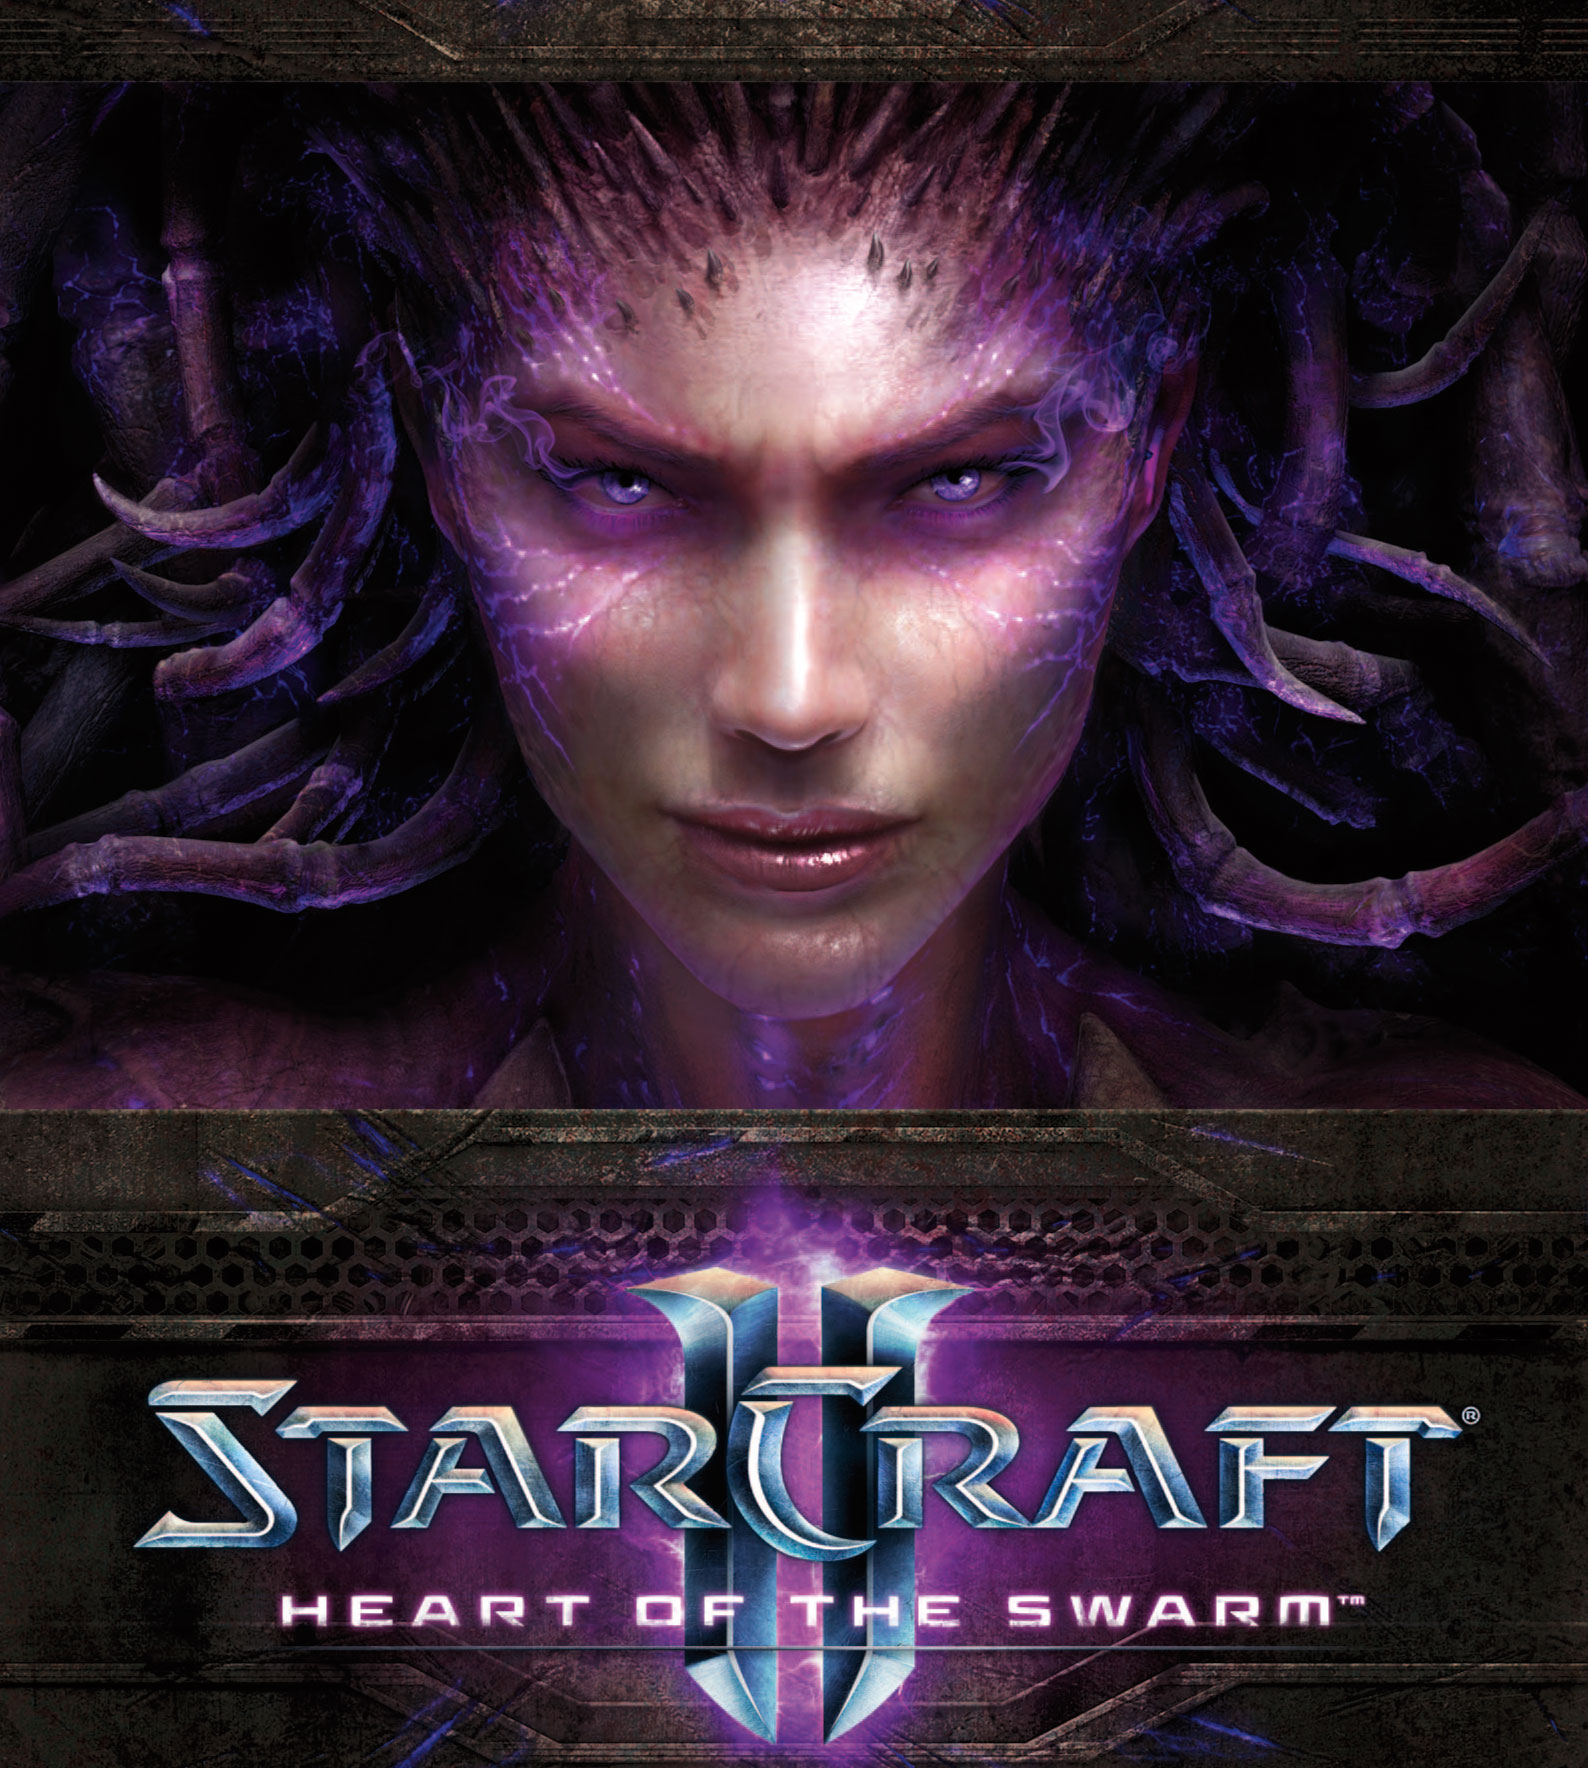 StarCraft II: Heart of the Swarm - PC/Mac [Digital Code] by Blizzard Entertainment